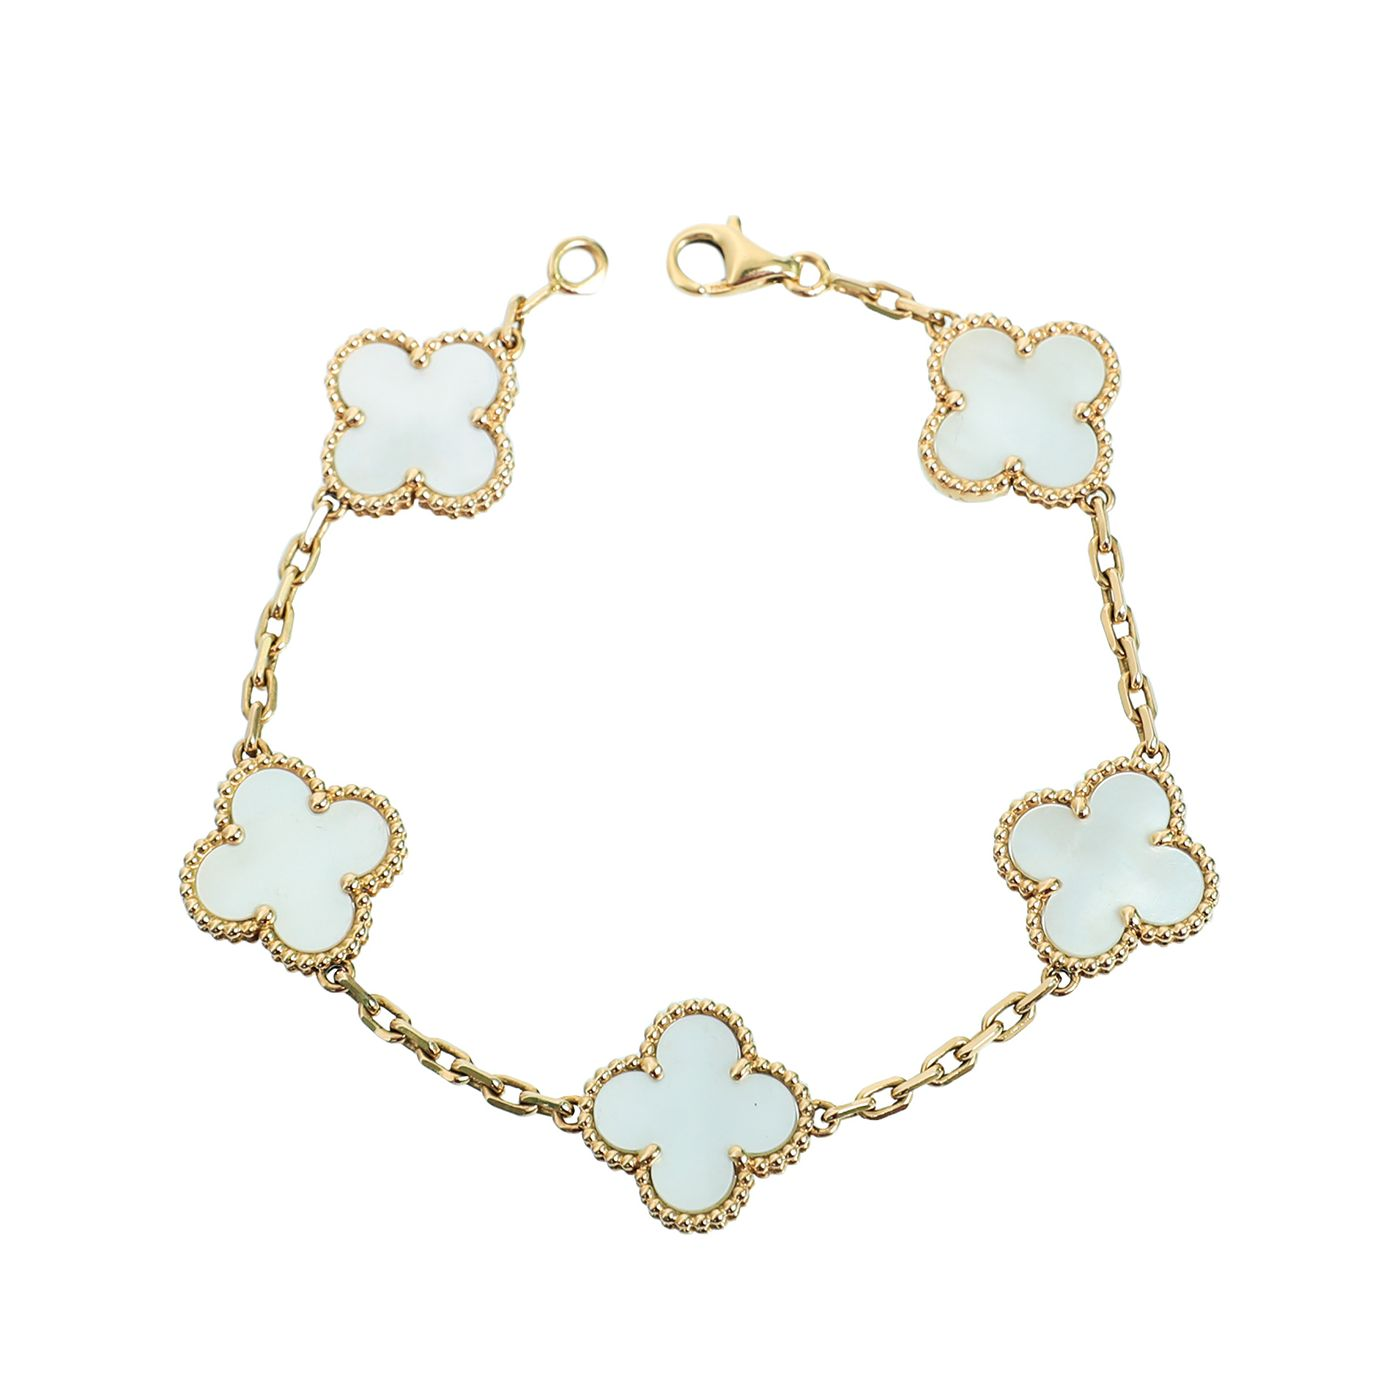 Van Cleef & Arpels 18K Yellow Gold Mother of Pearl Vintage Alhambra Bracelet